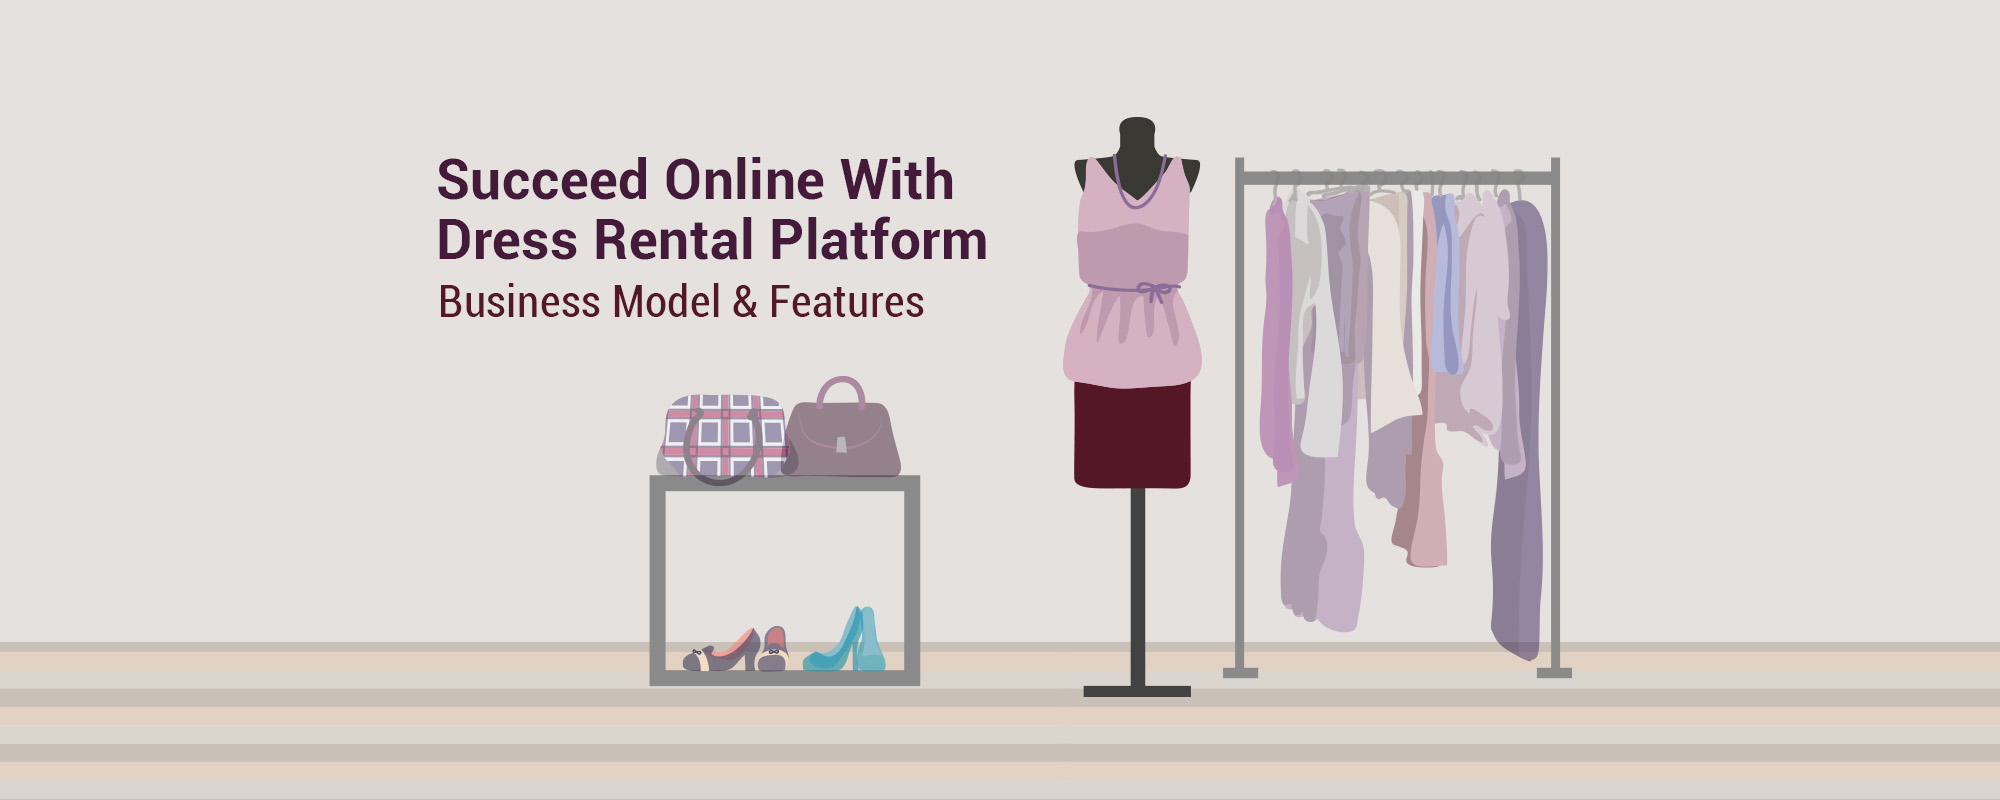 Right Way to Start Online Dress Rental Business – Business Model and Website Features